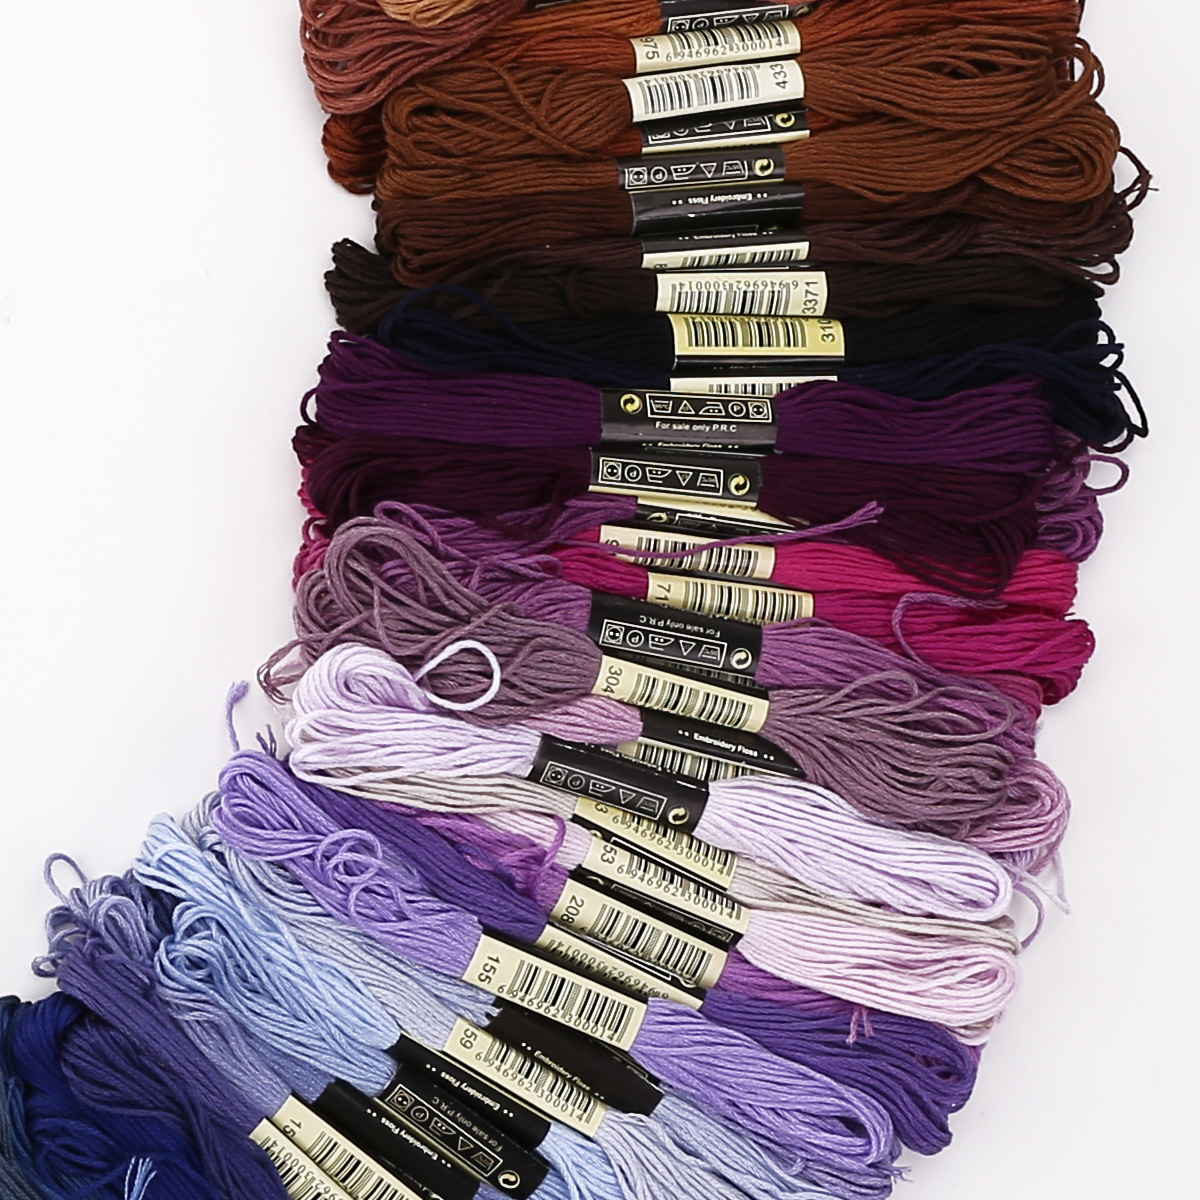 50-300-Color-Cross-Stitch-Thread-Embroidery-Floss-Sewing-Skeins-100-Cotton-Line thumbnail 10